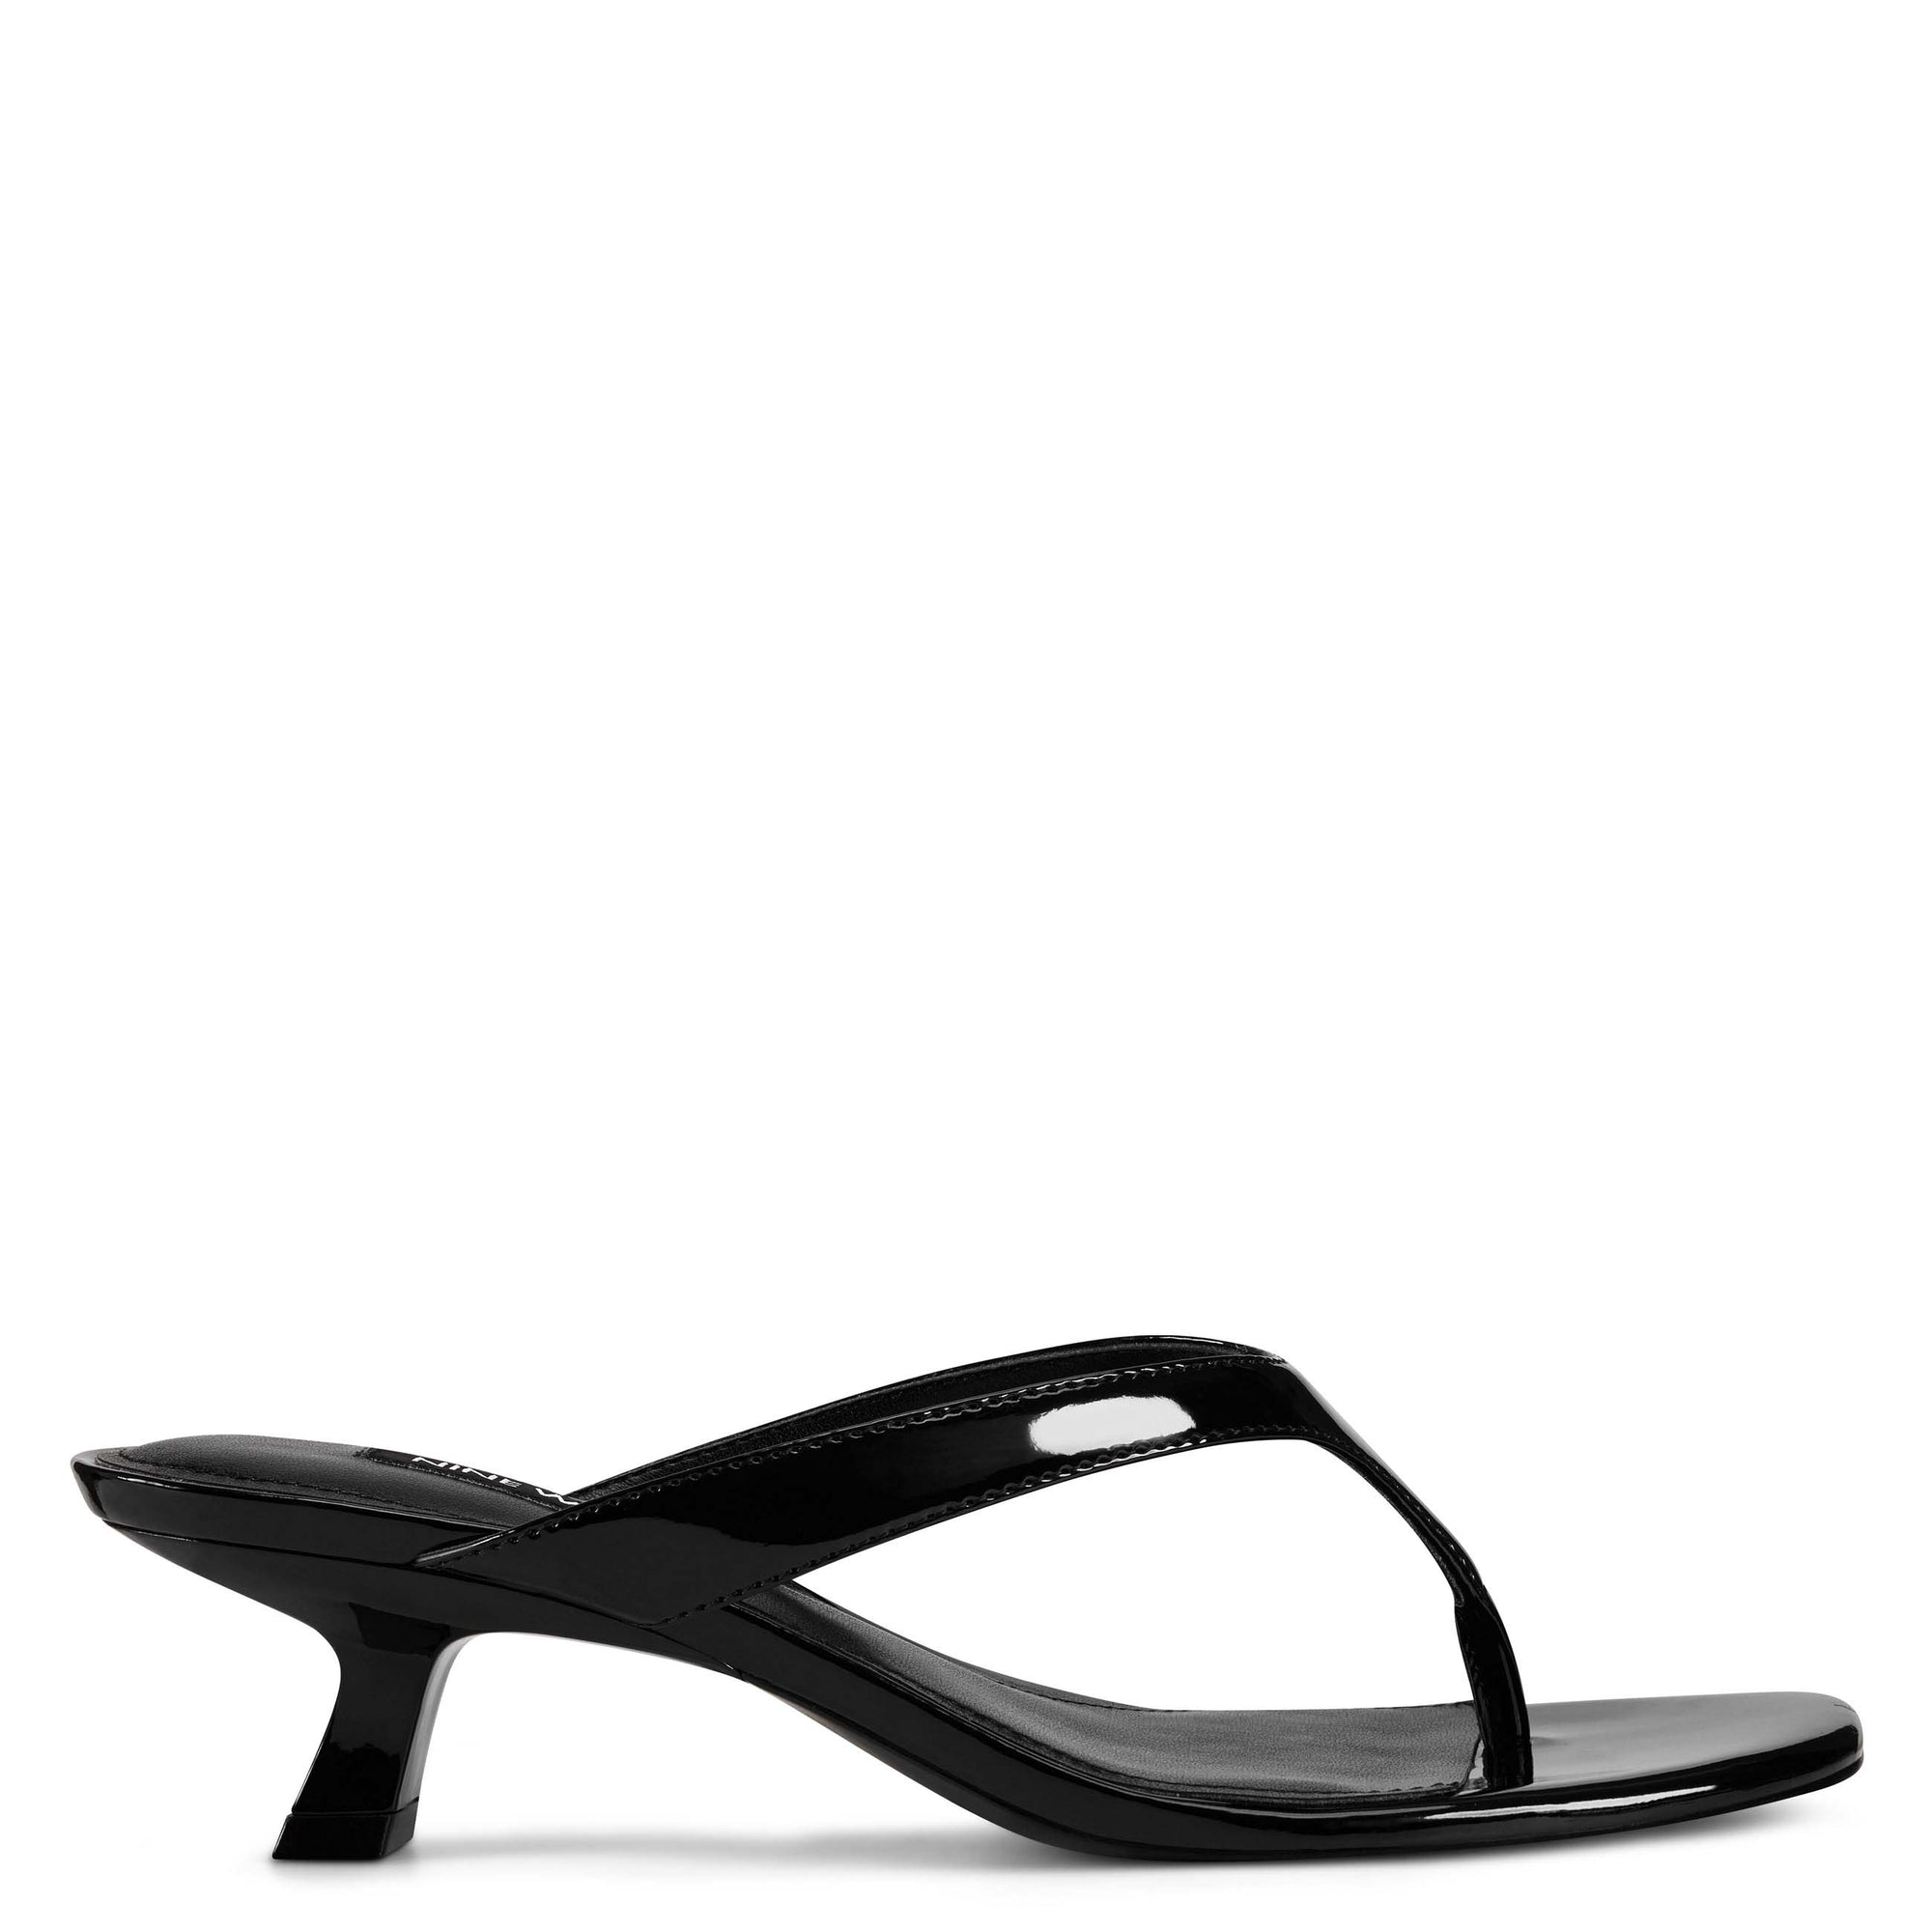 manold-heeled-thong-sandals-in-black-patent